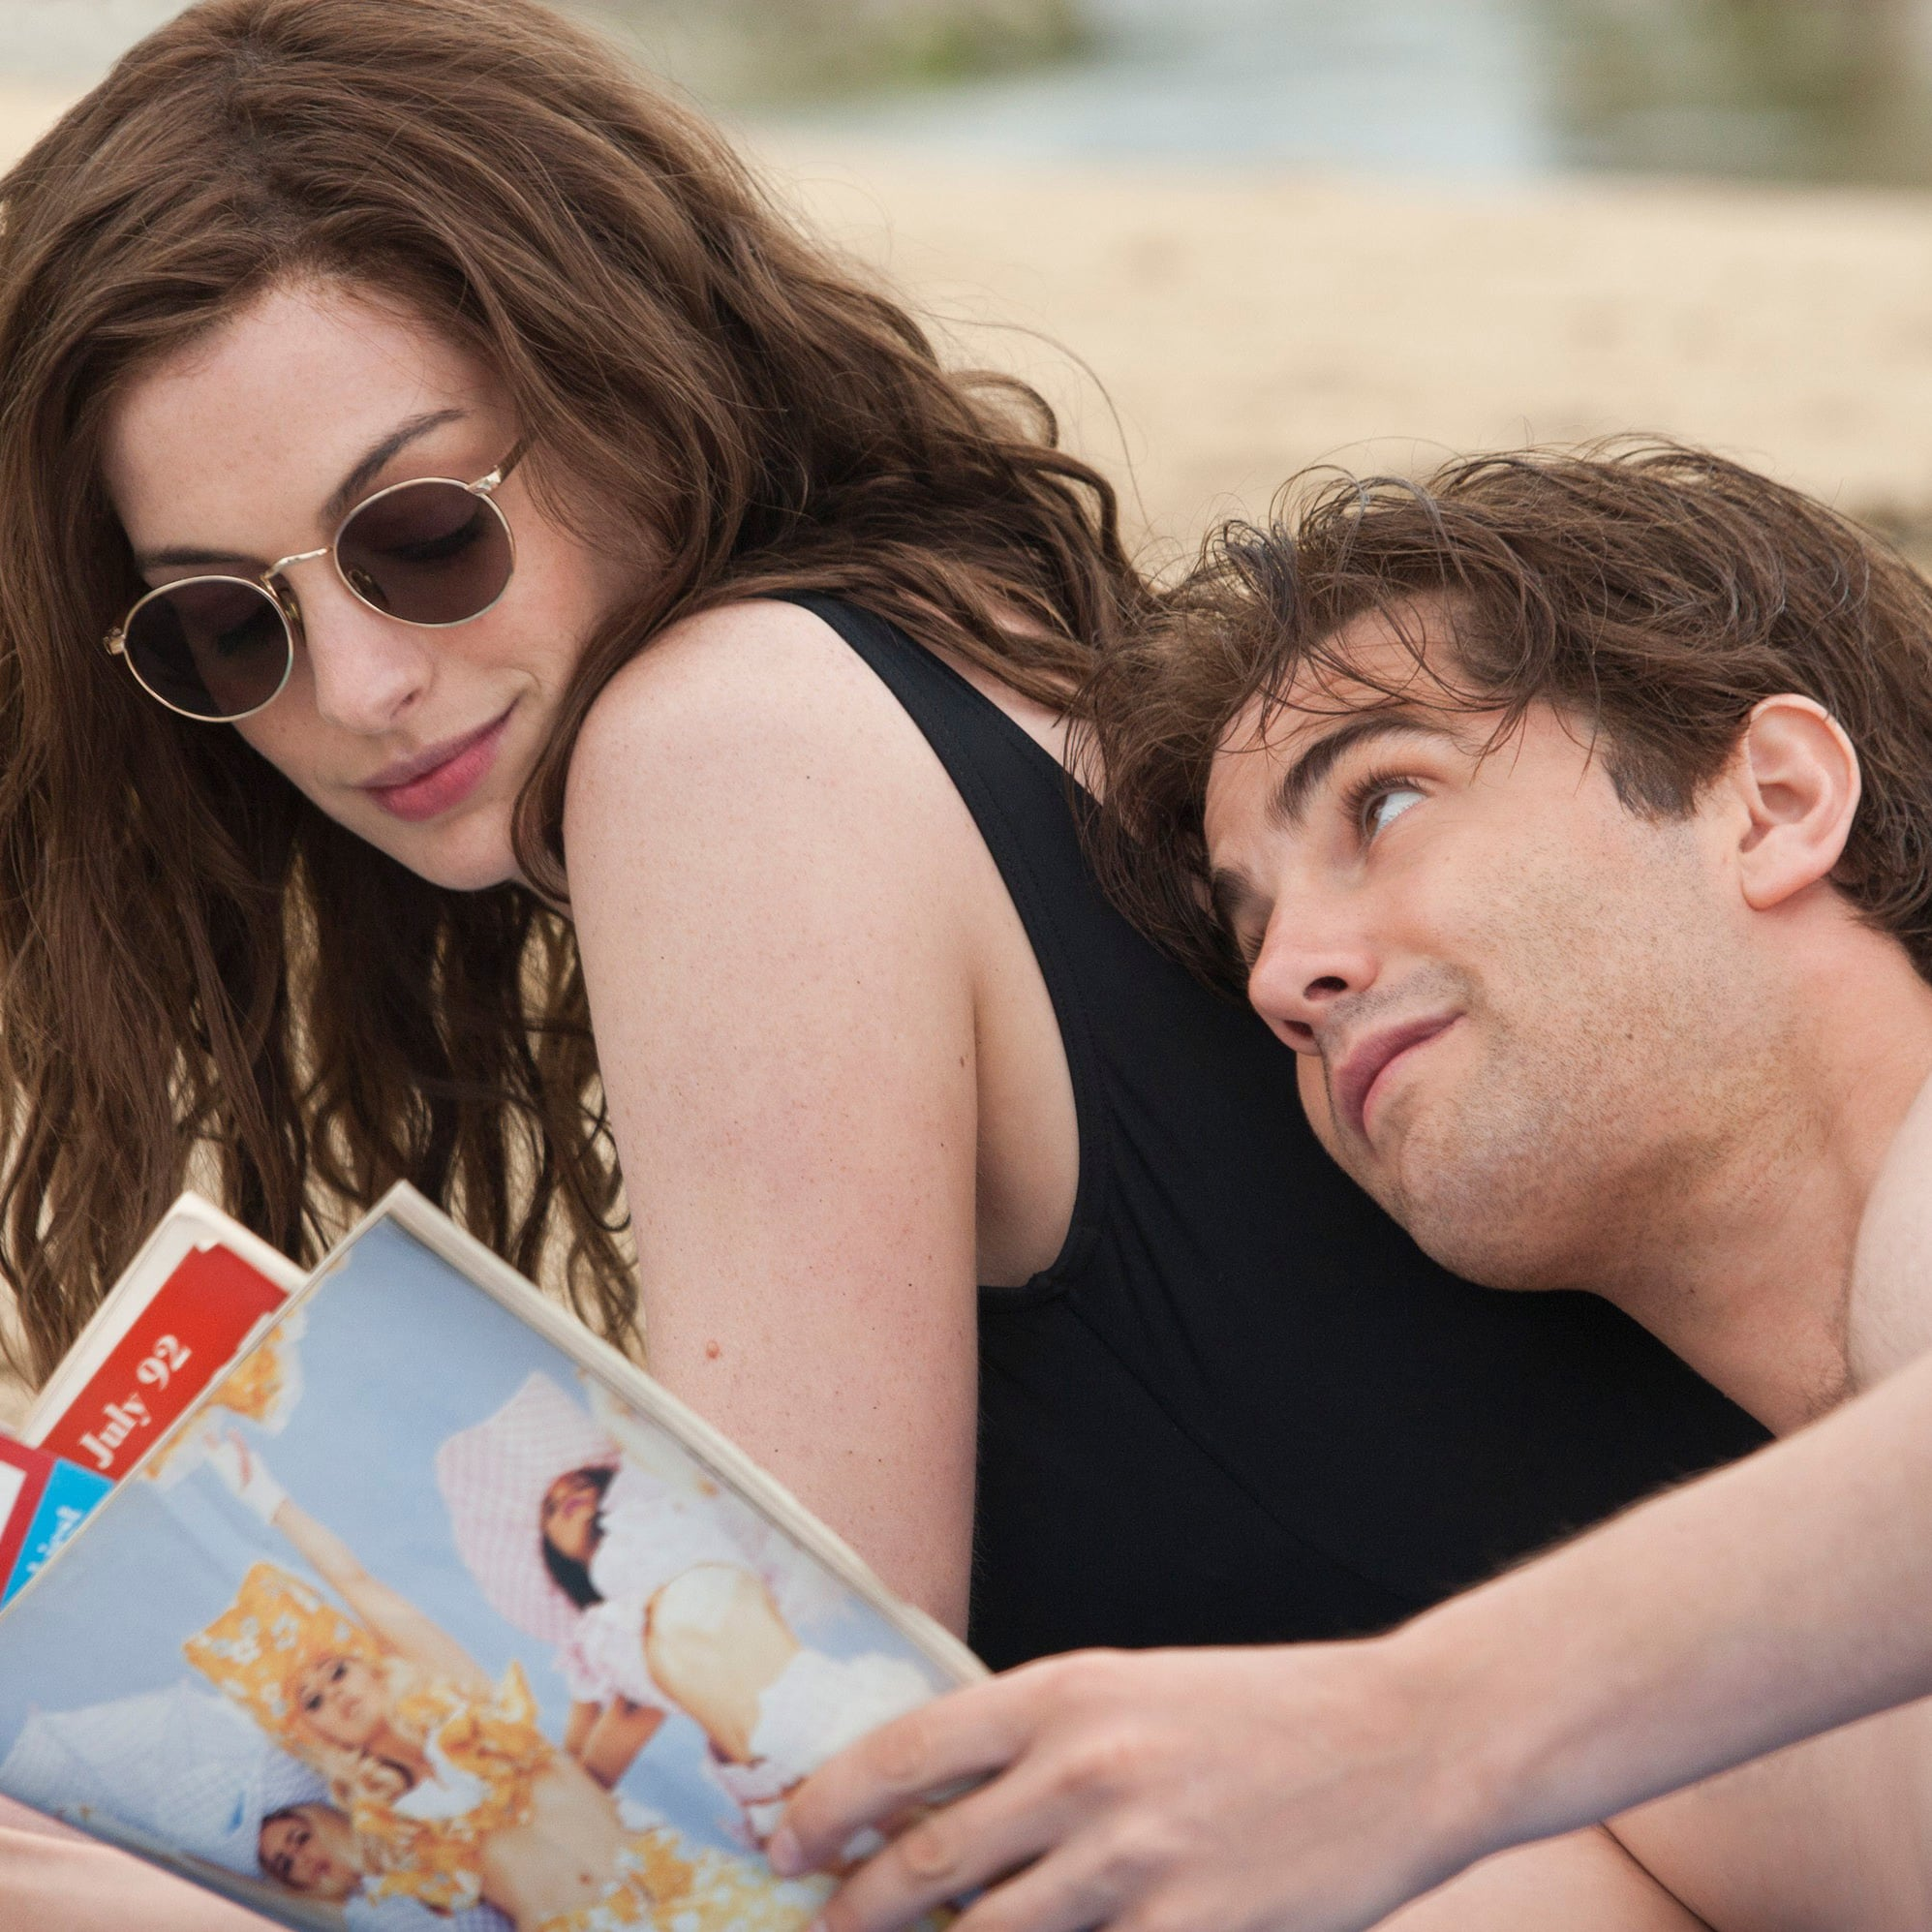 summer love movies on netflix streaming | popsugar love & sex